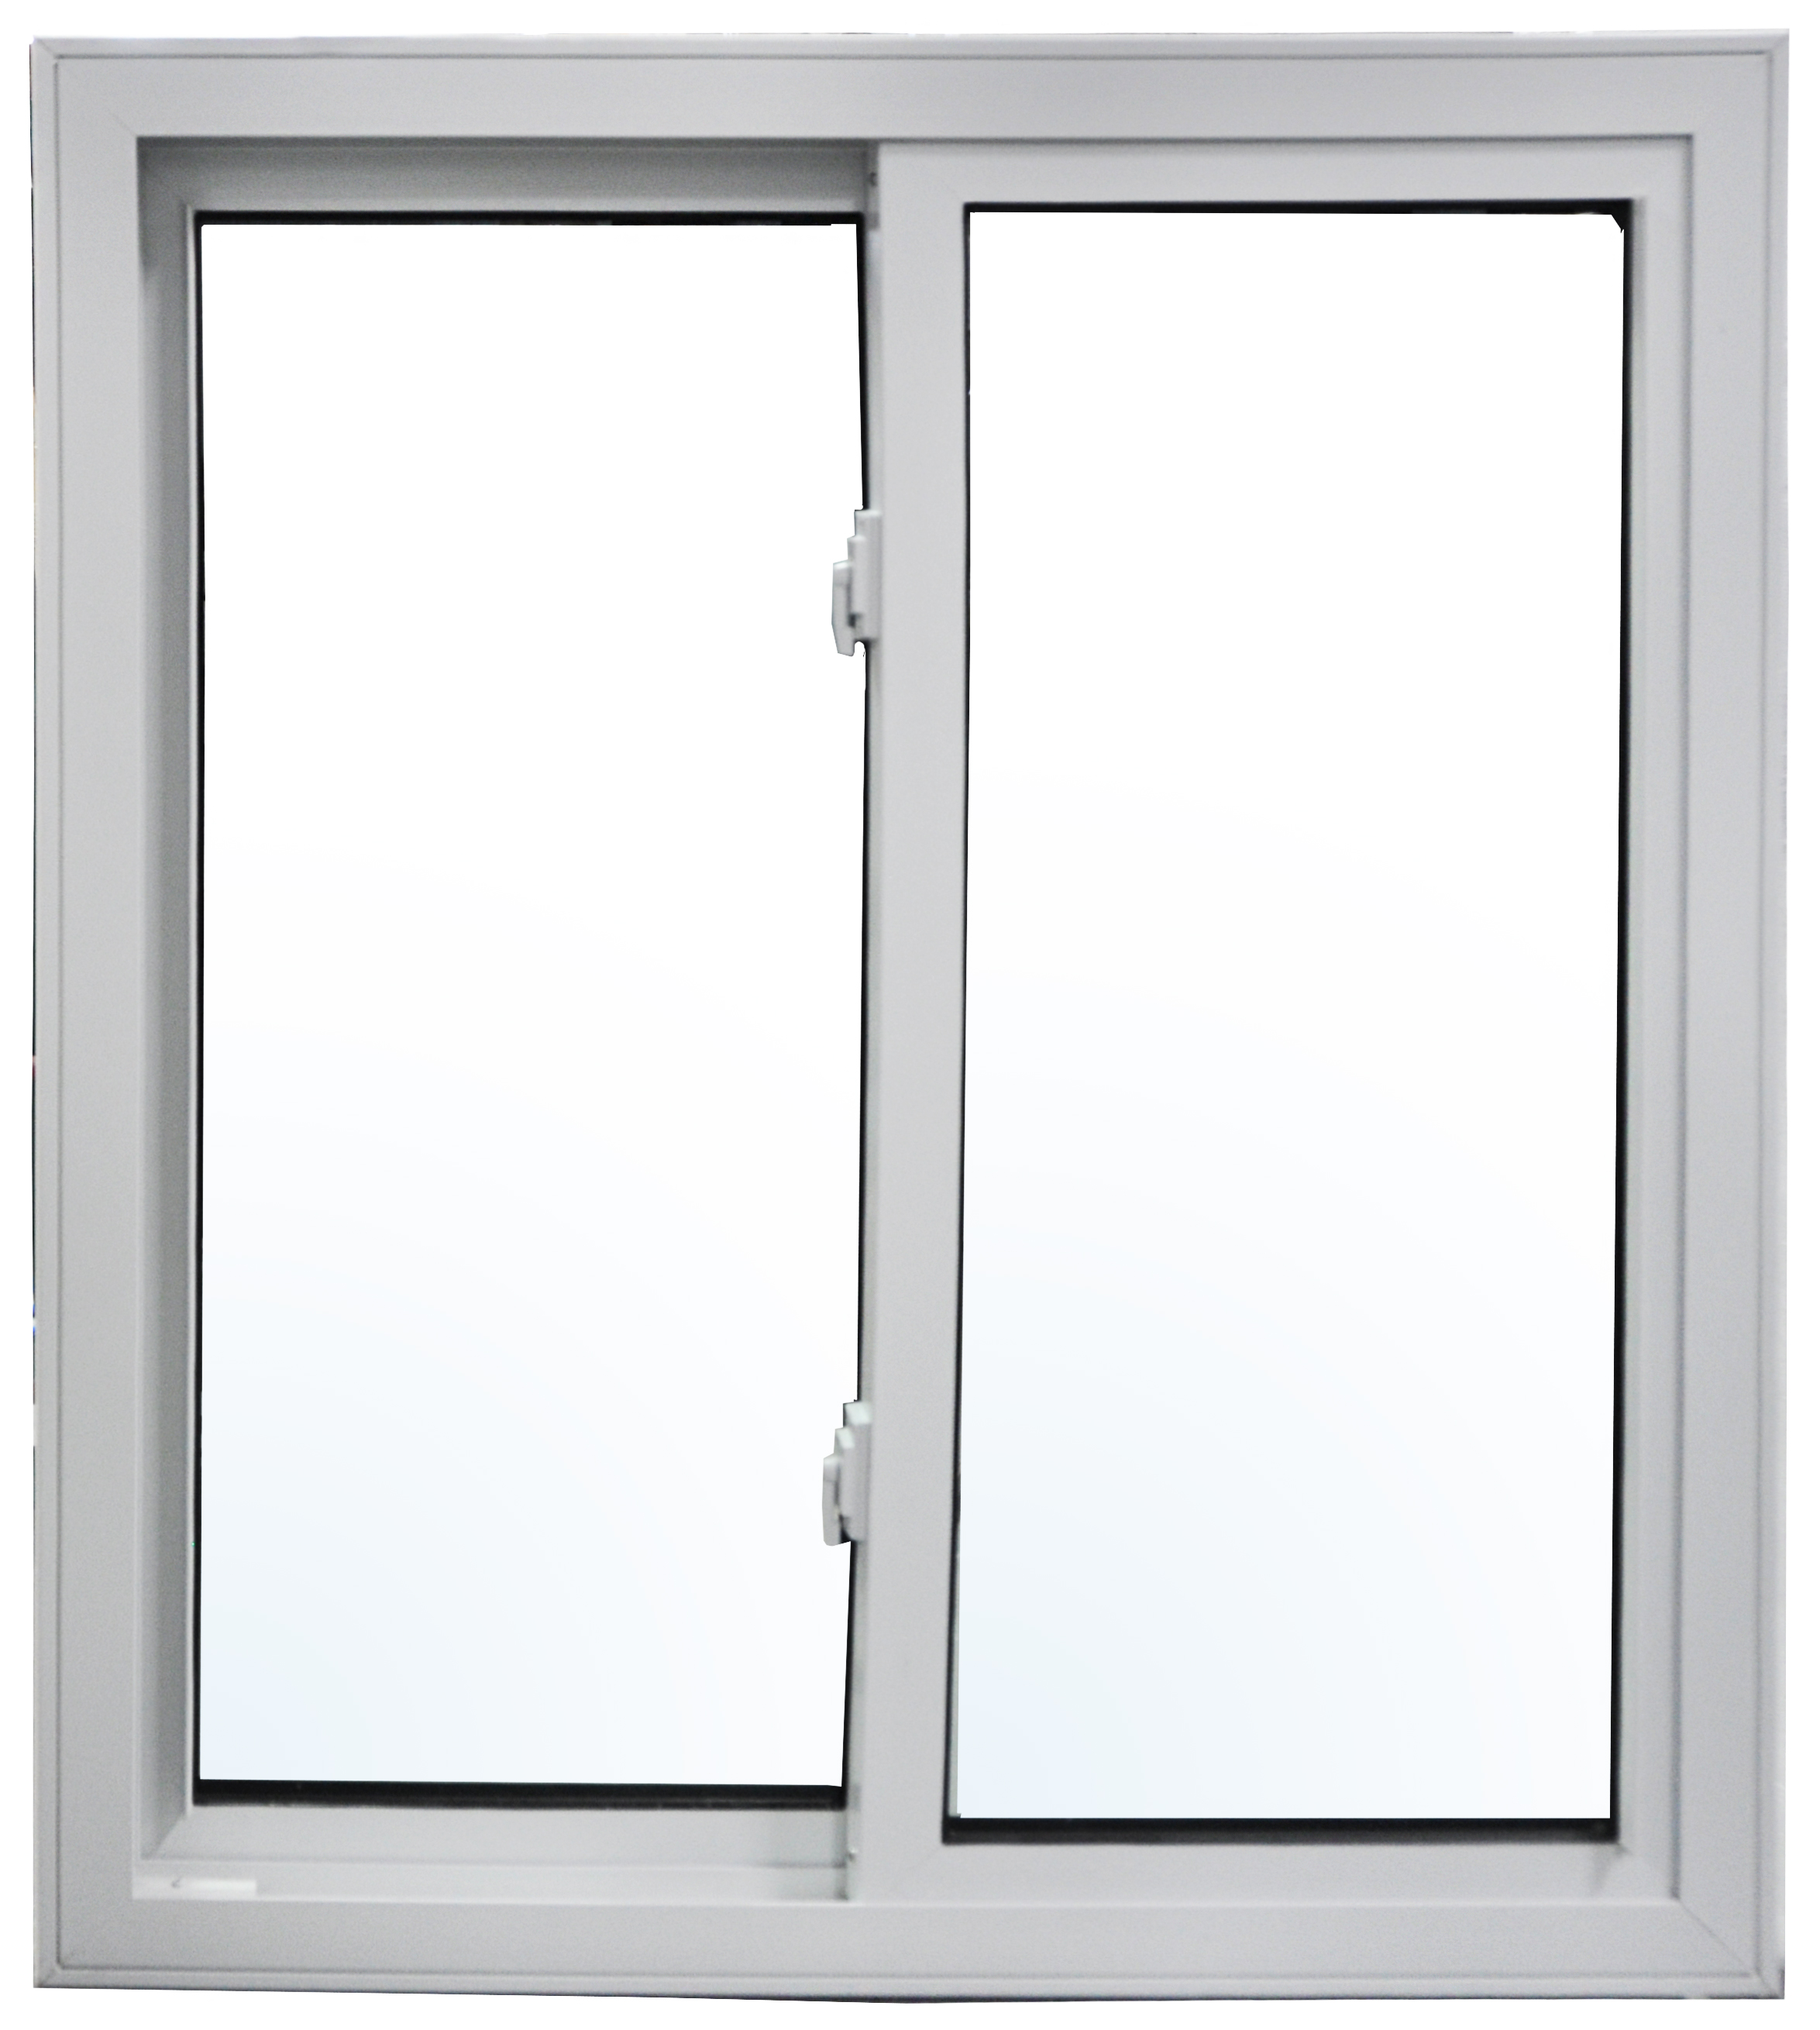 400 series fiberglass side slider windows fibertec for Fiberglass windows